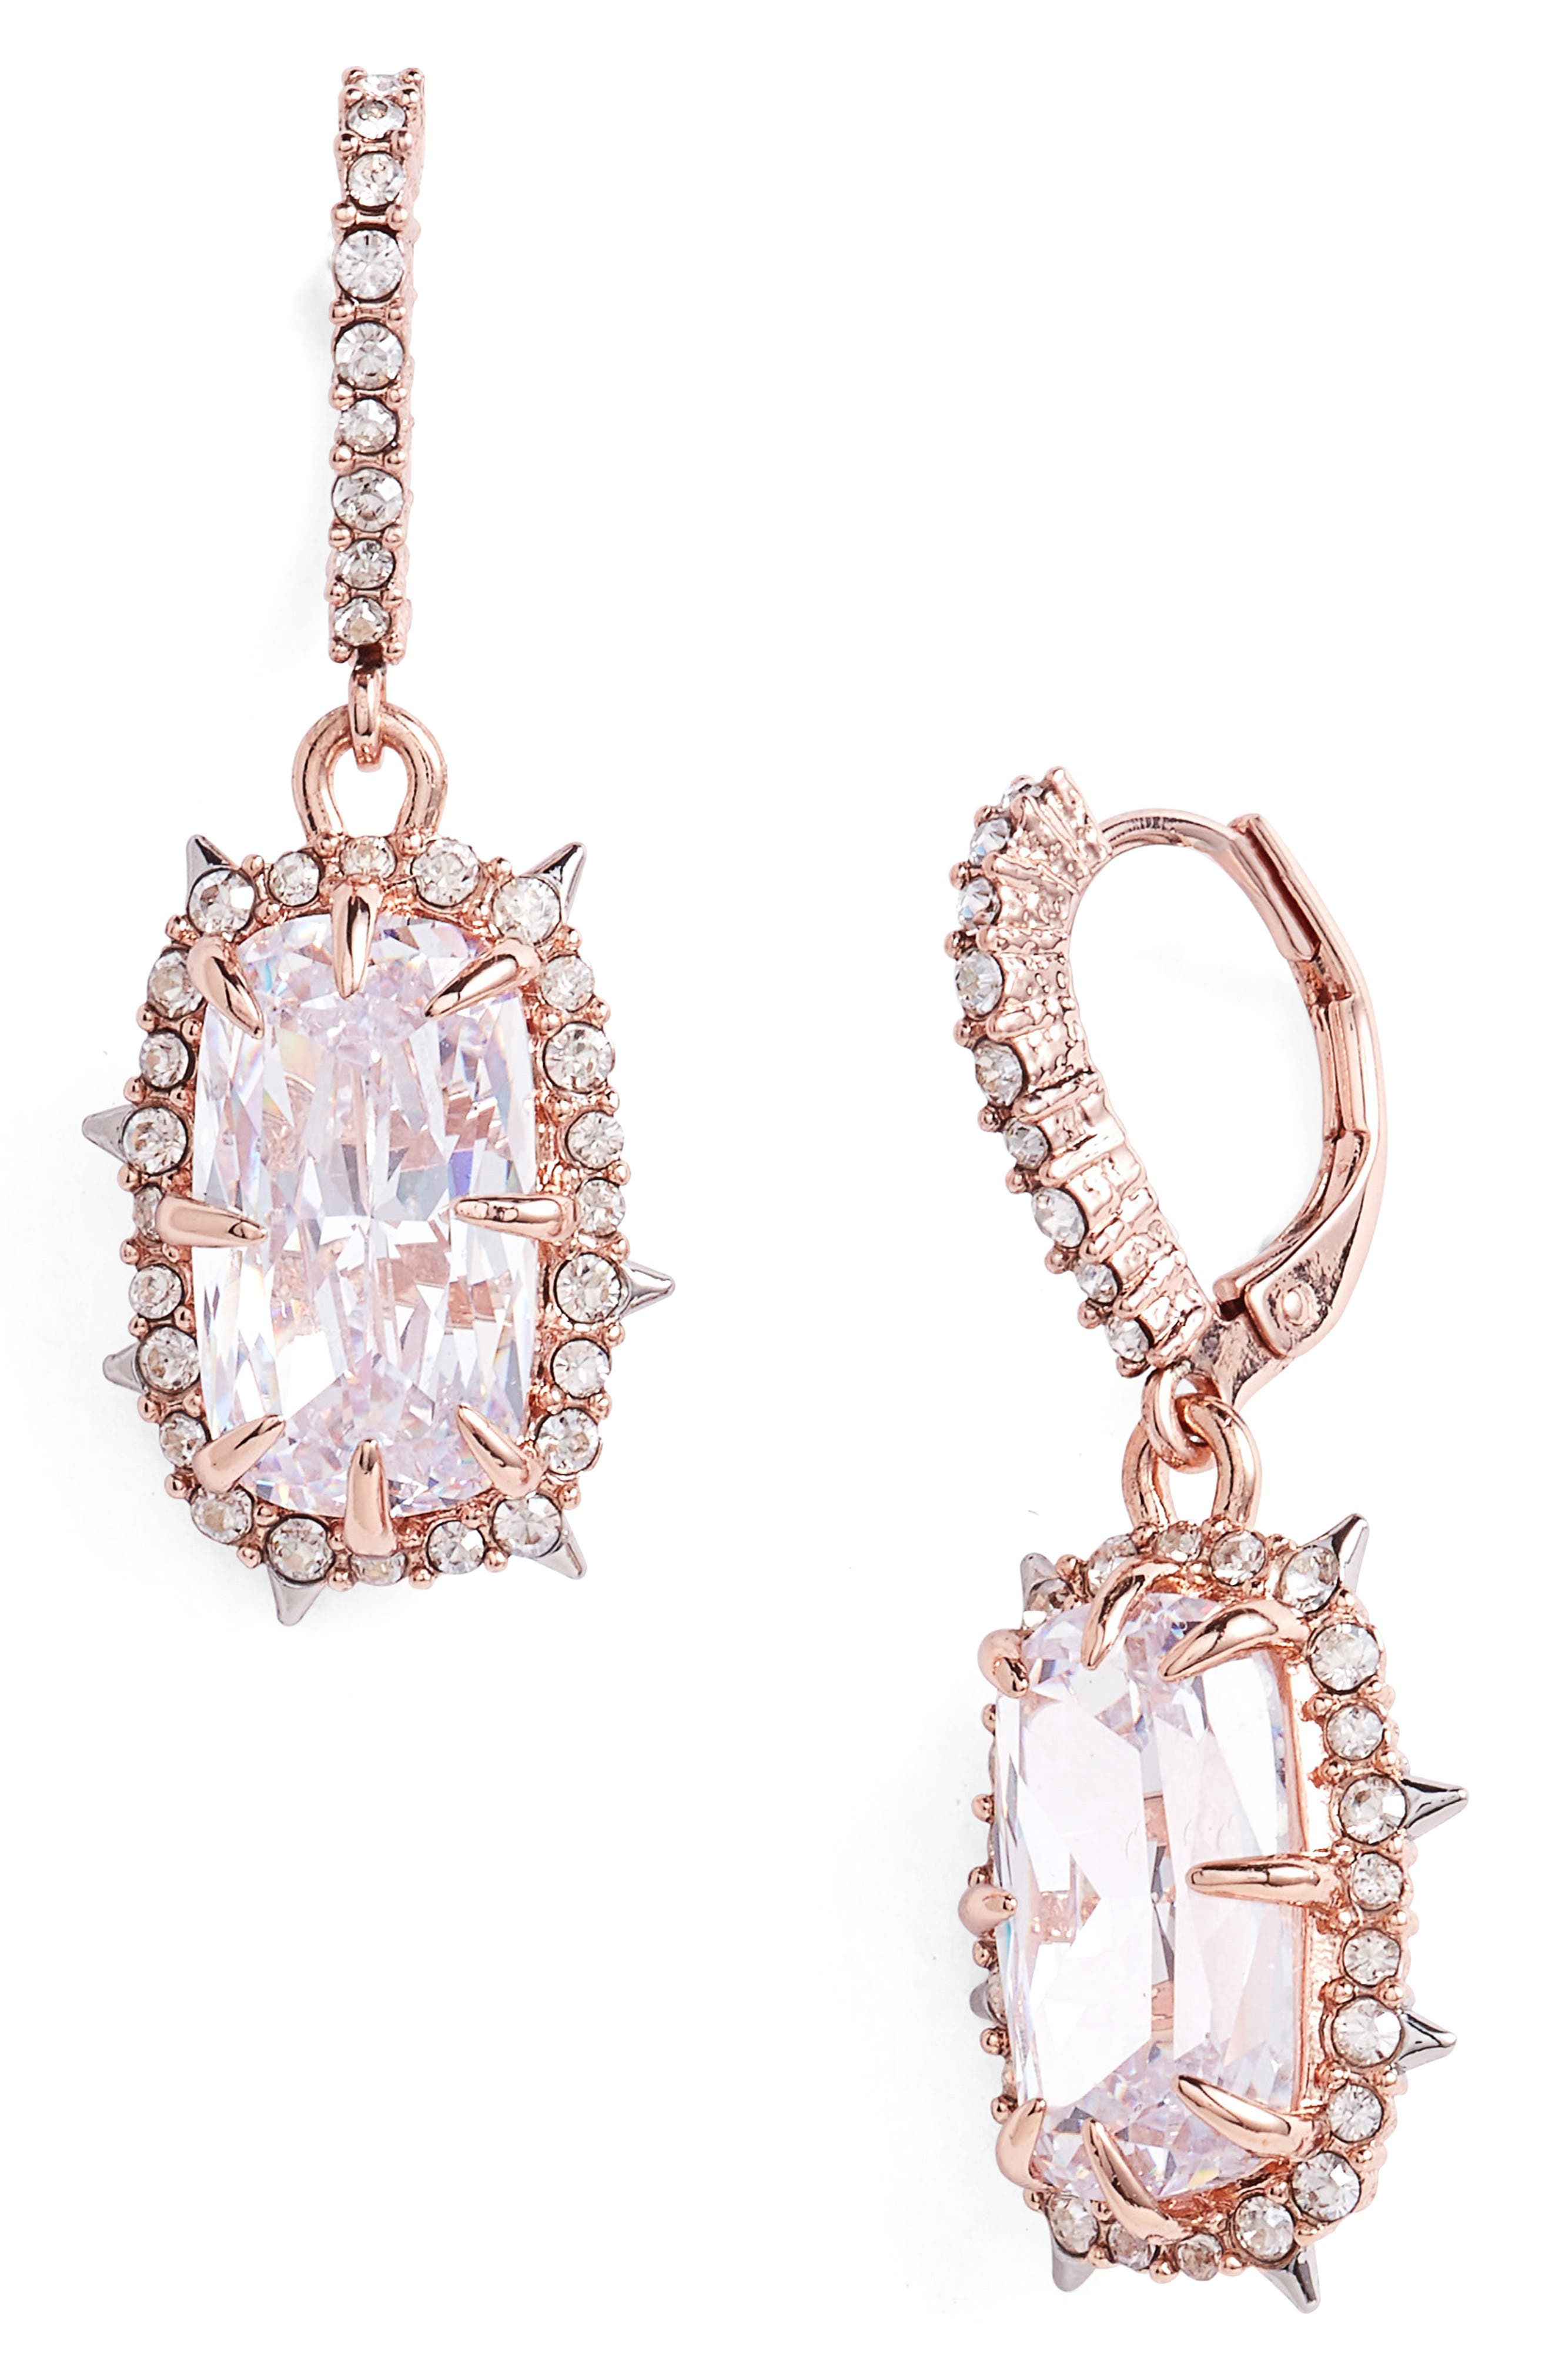 Crystal Drop Earrings,                         Main,                         color, ROSE GOLD